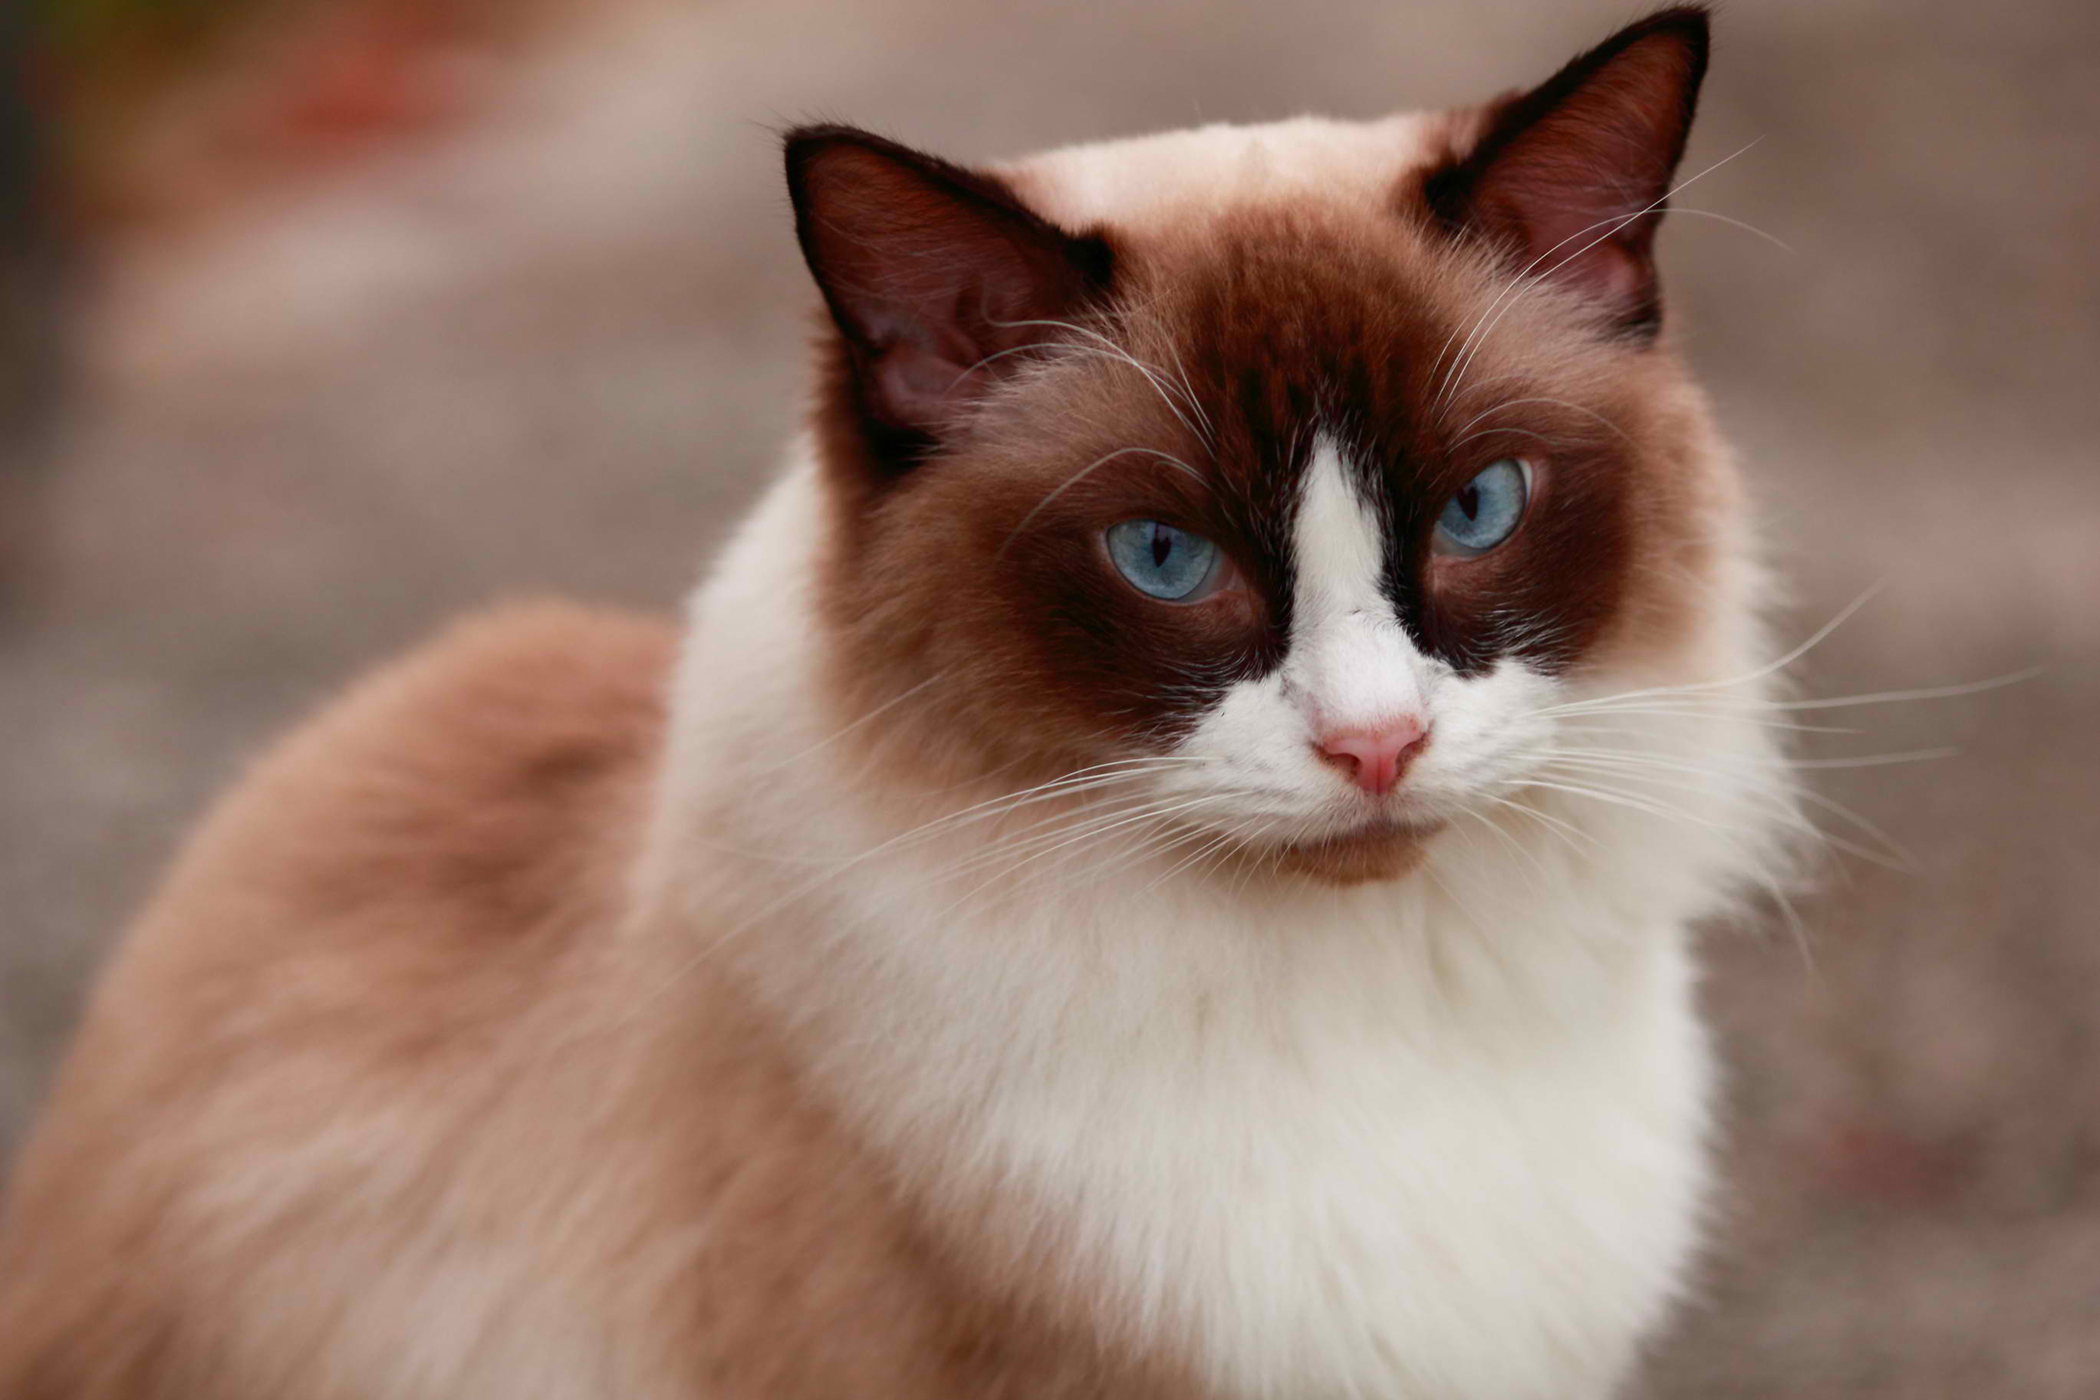 Low White Blood Cell Count in Cats